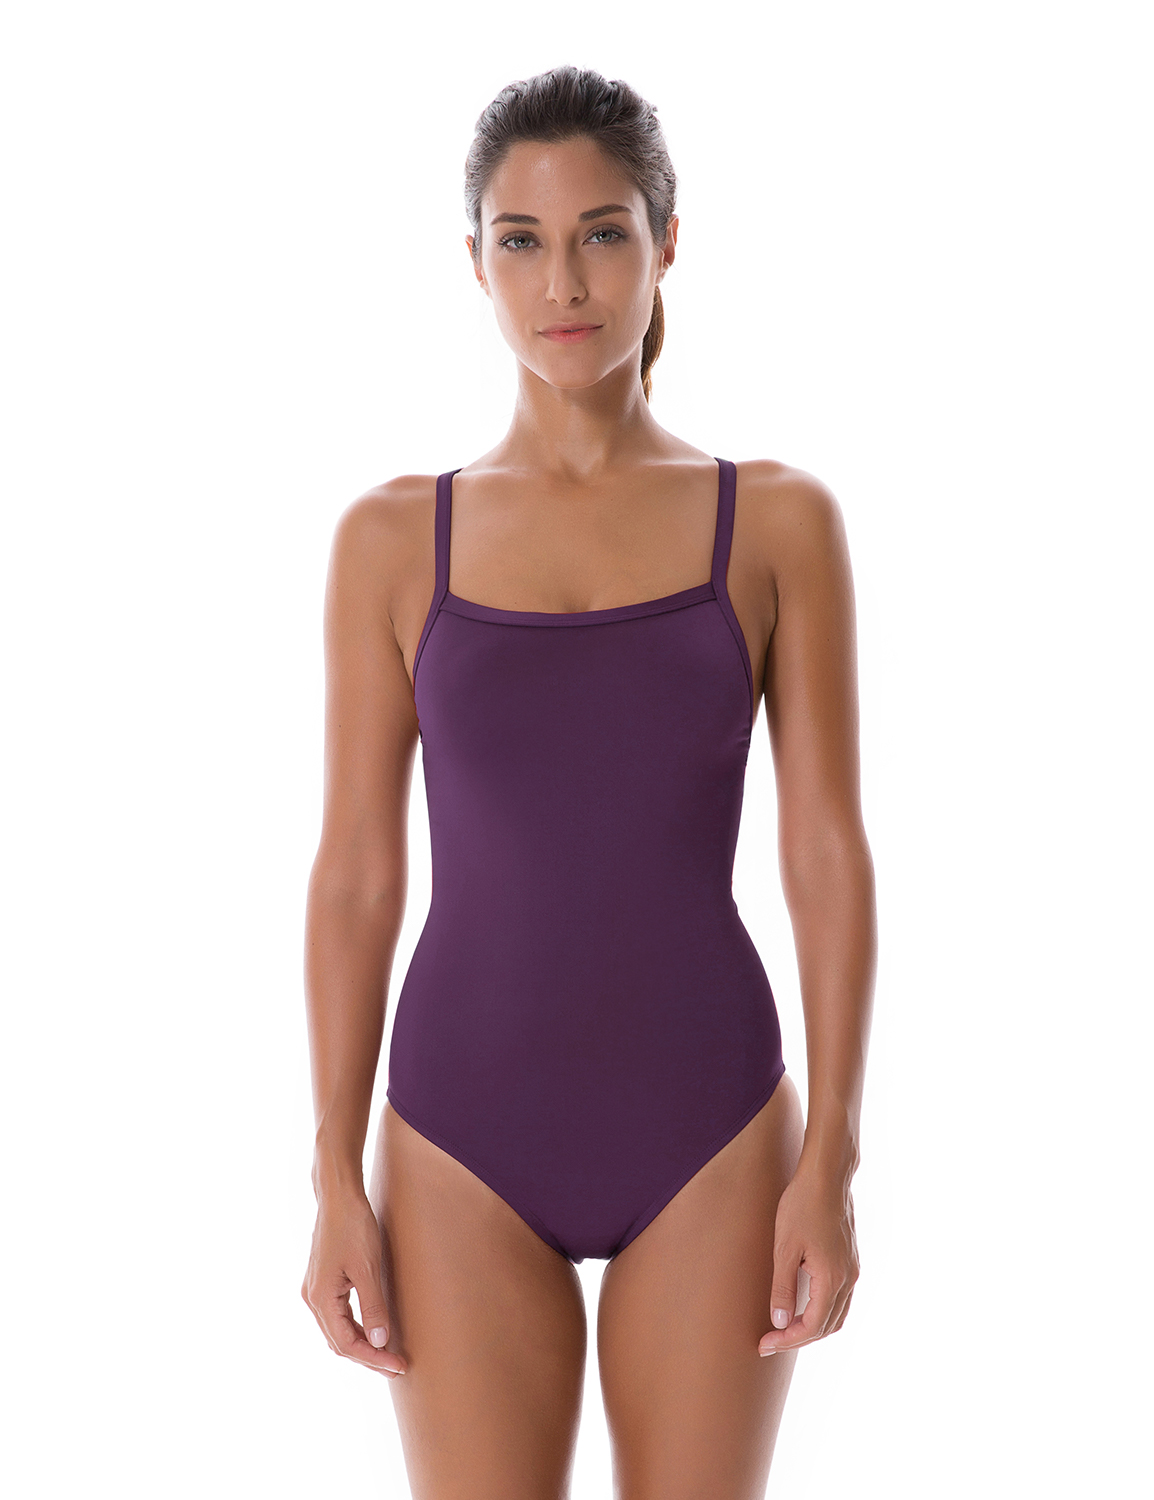 Women's Sleek Solid Elite Training Suit with Cups Padded Sporty Athletic One Piece Swimsuit sport elite se 2450